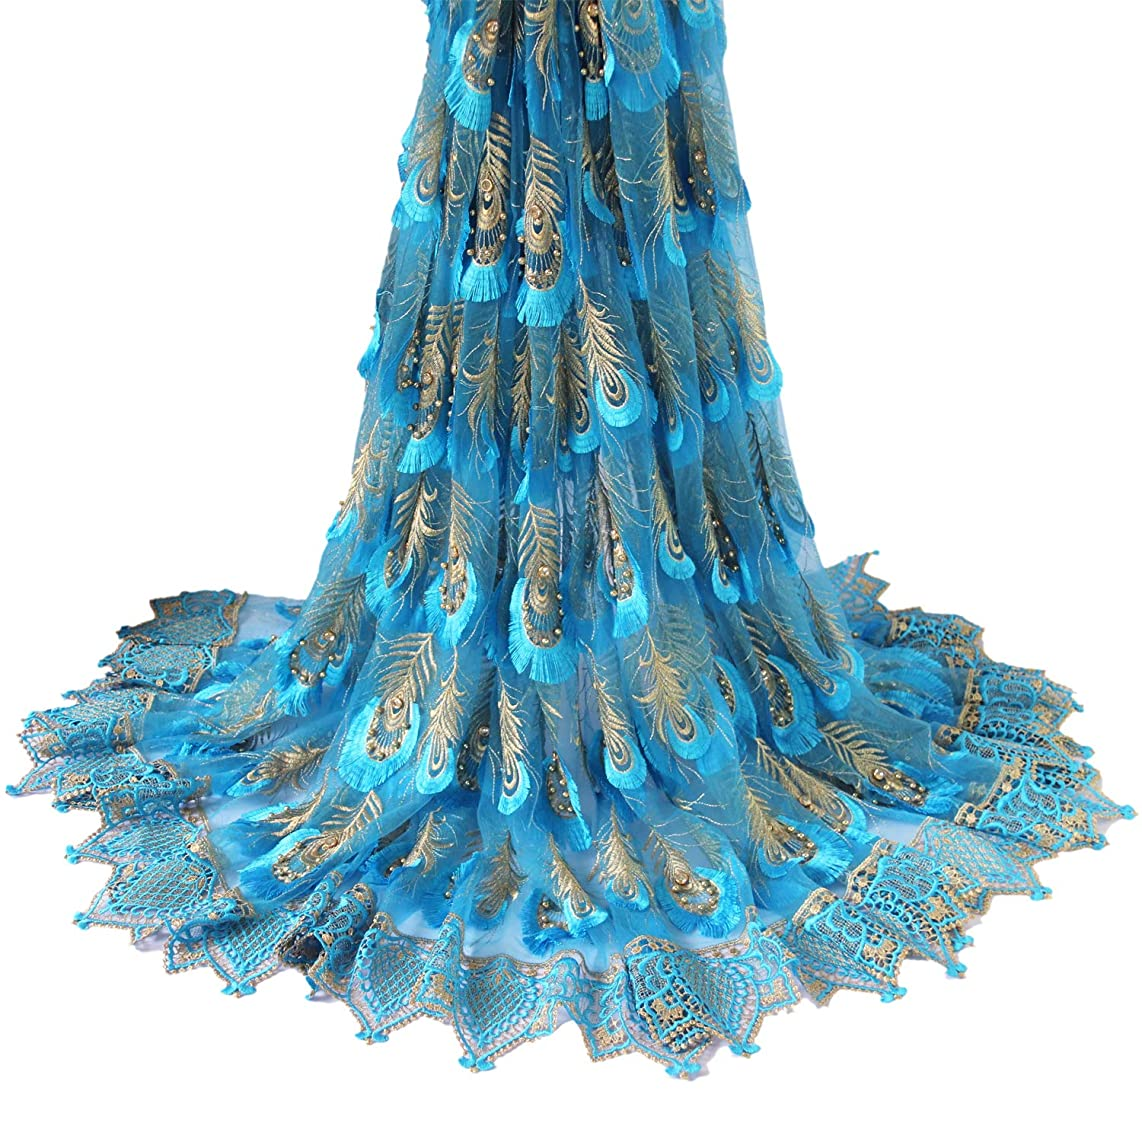 Aisunne 5 Yards African Lace Fabrics Blue Classics Nigerian French Lace Fabric with Embroidered Beading and Rhinestones for Wedding Party Dresses (Light Blue)